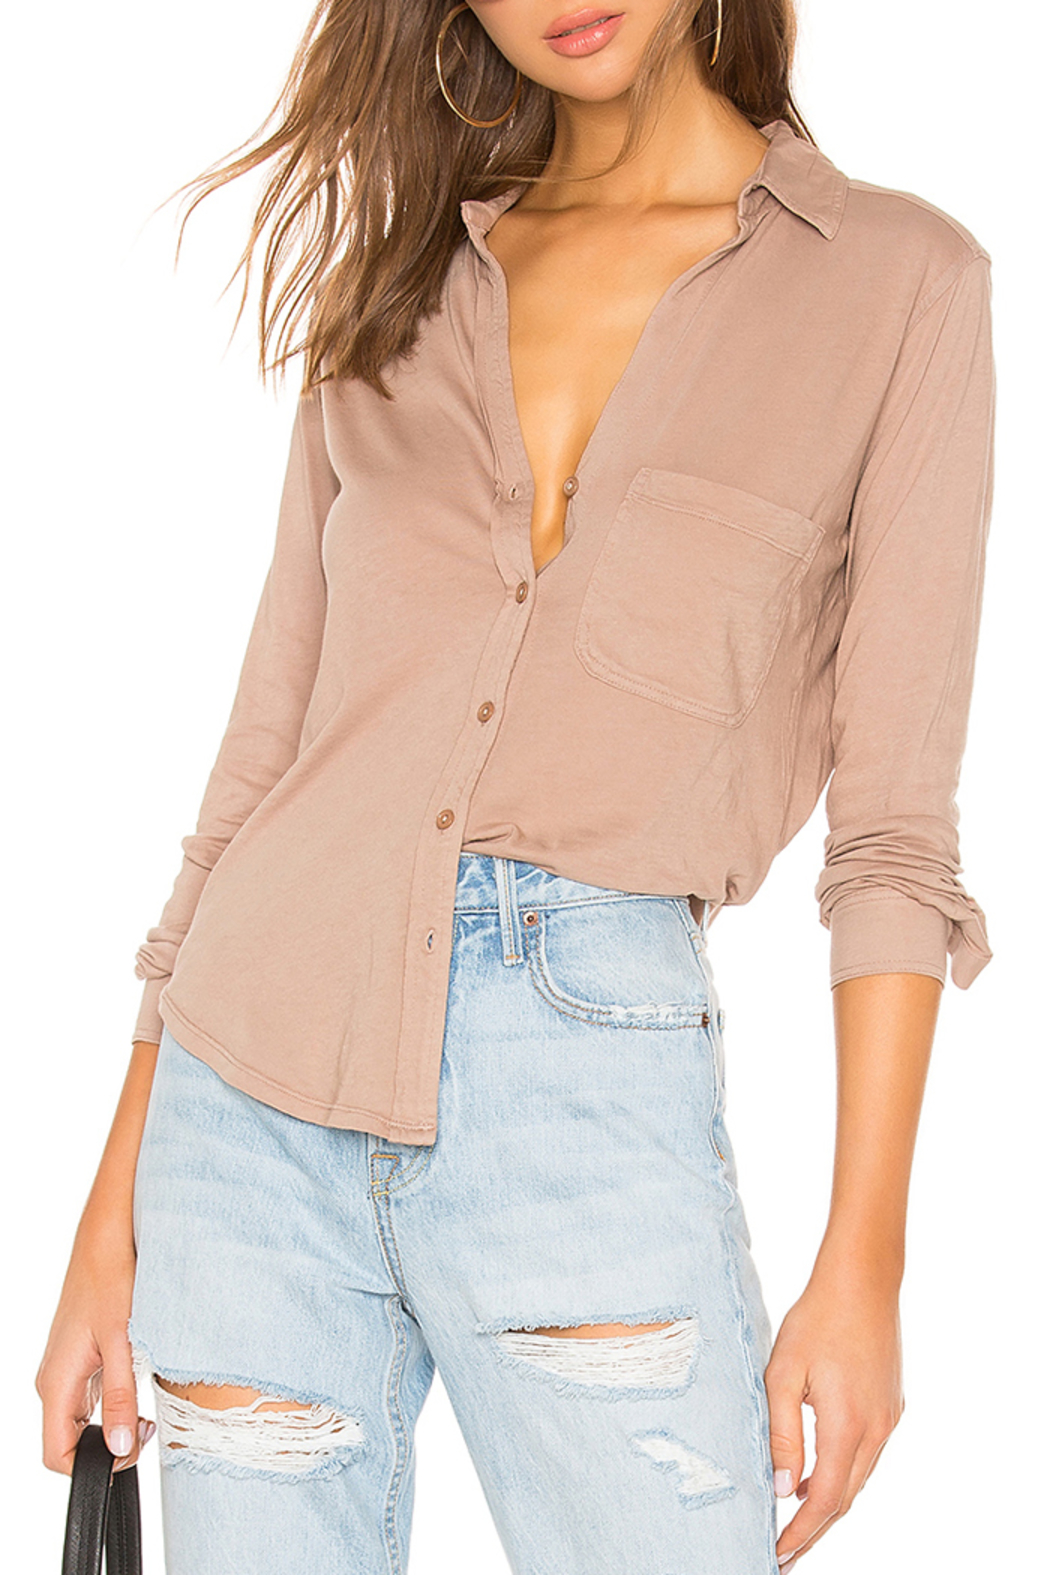 Bobi BOBI LIGHTWEIGHT JERSEY BUTTON DOWN - Front Cropped Image